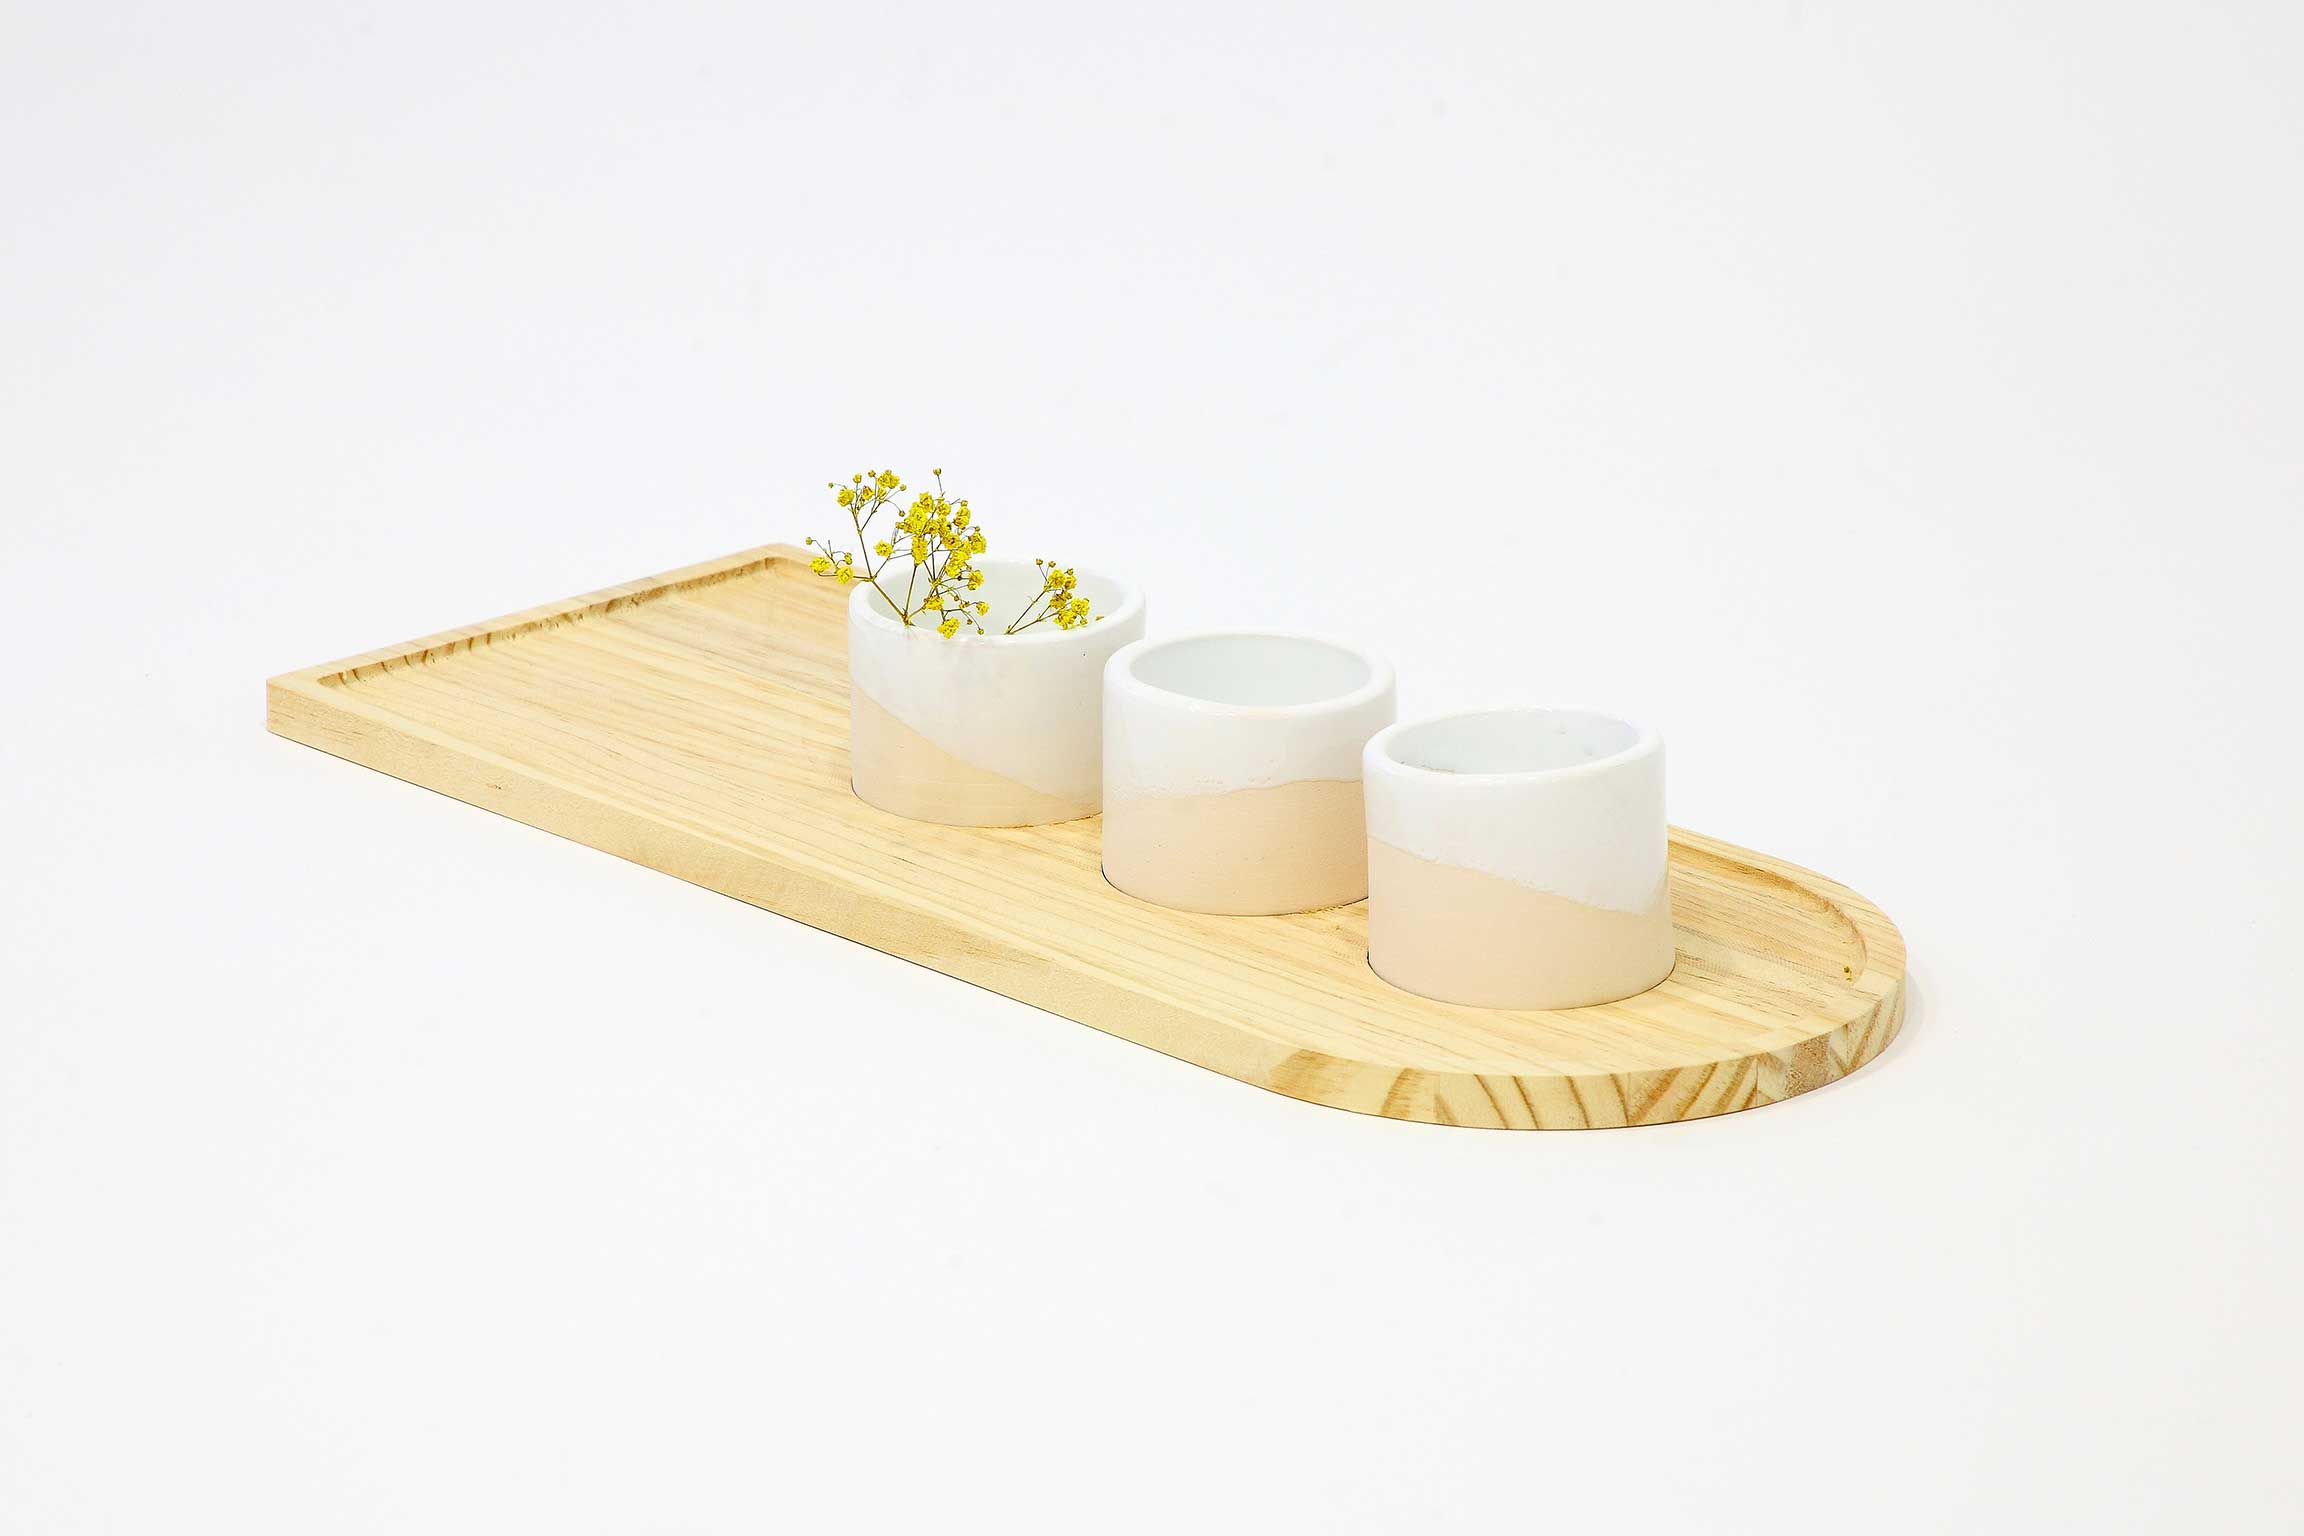 Hiru - Table for pitchers